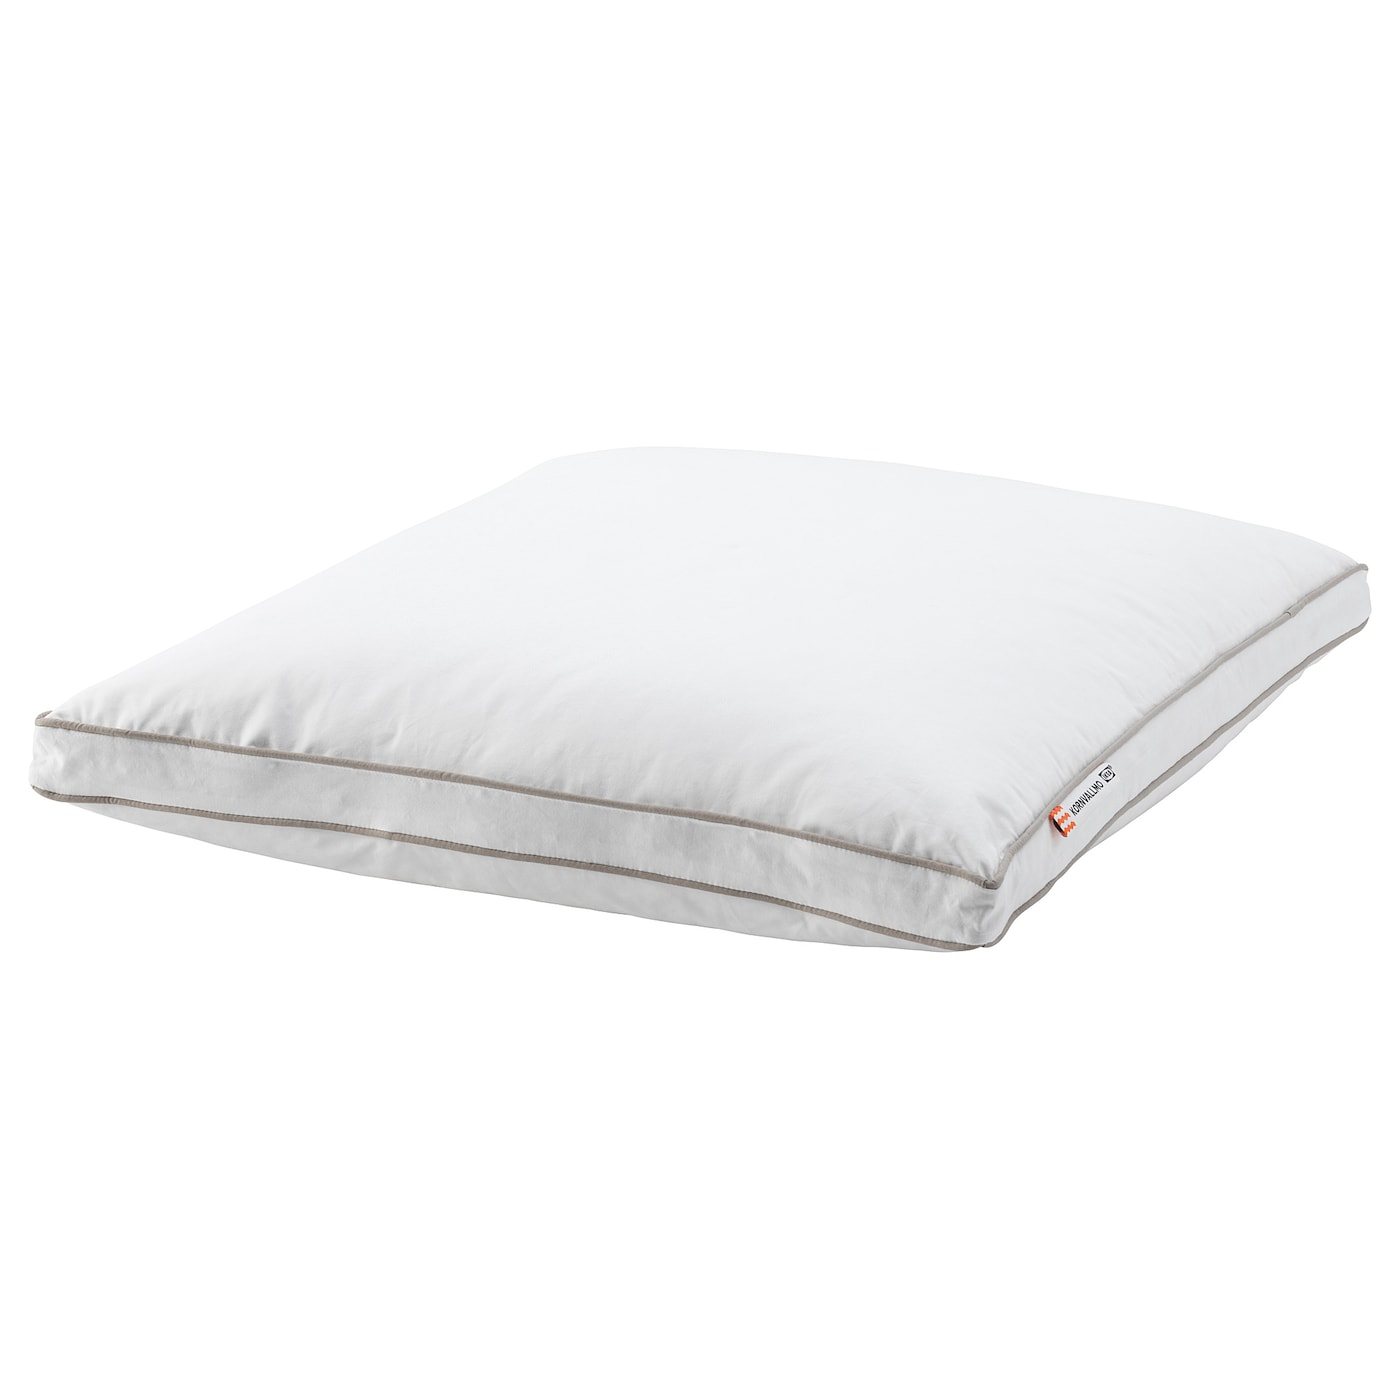 IKEA KORNVALLMO pillow, softer A soft pillow in cotton sateen, filled with duck down and feathers.